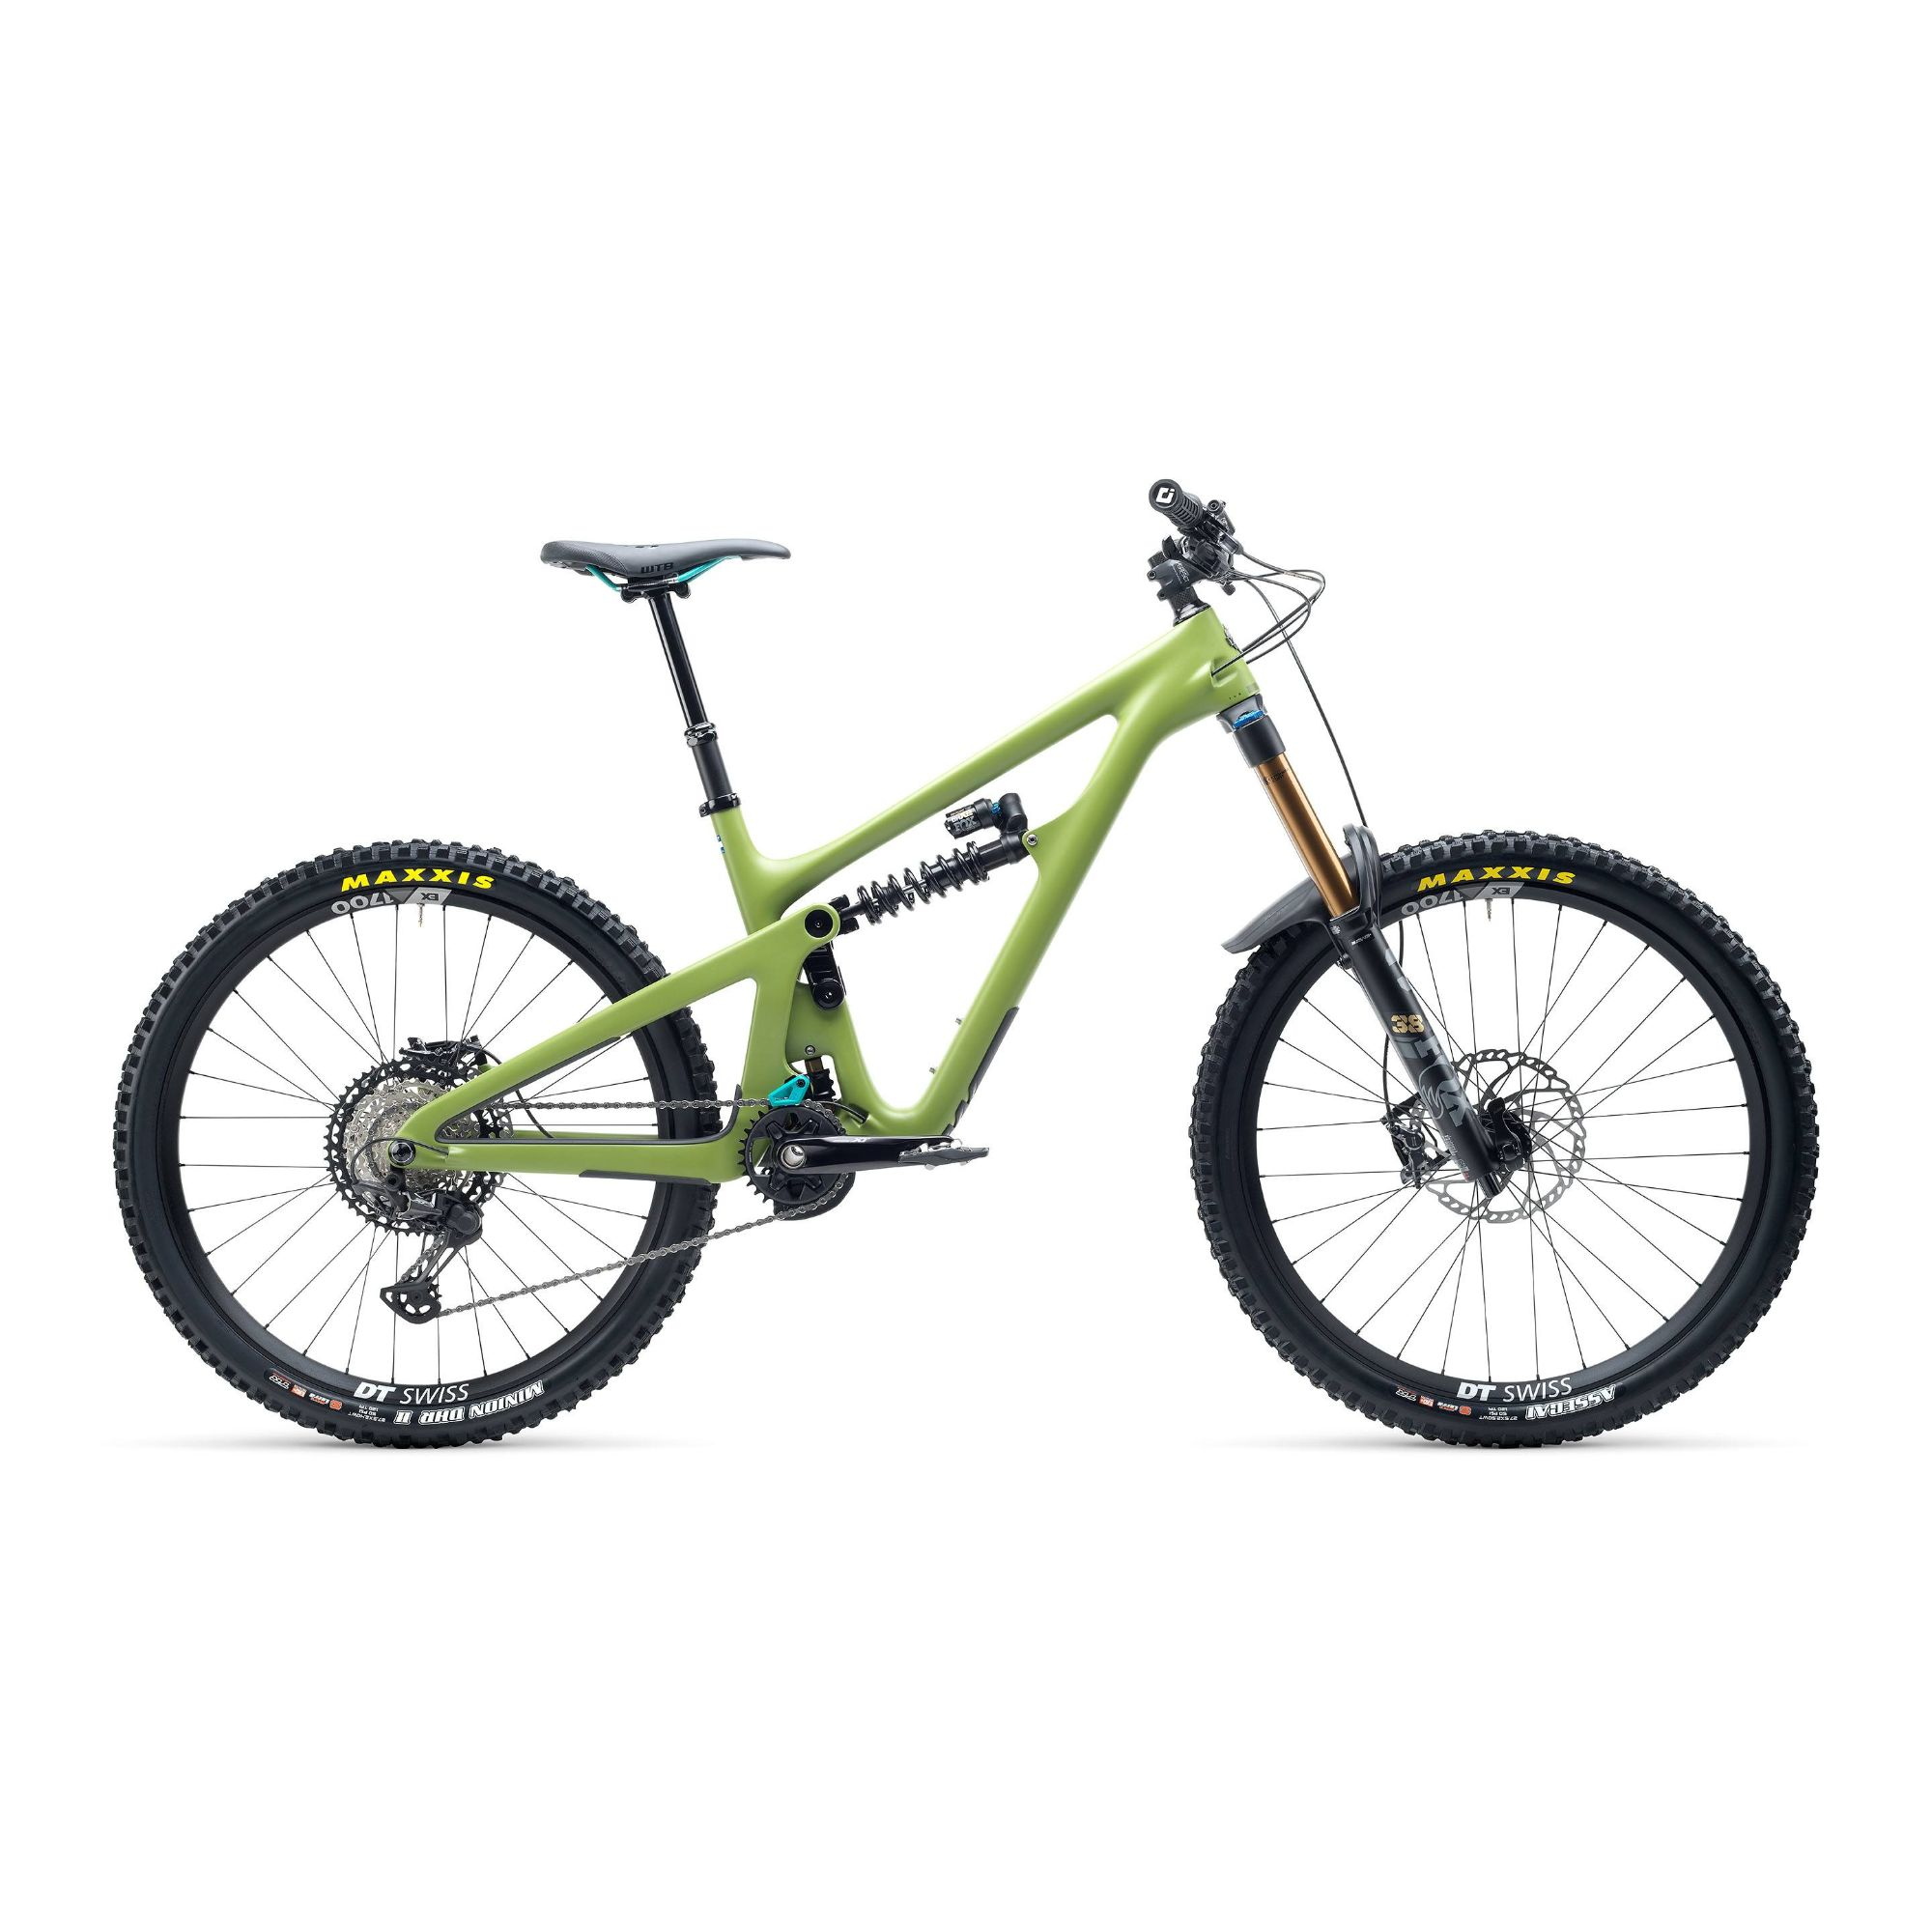 Yeti SB165 T Series T1 27.5 XT Carbon Mountain Bike 2021 Moss Green